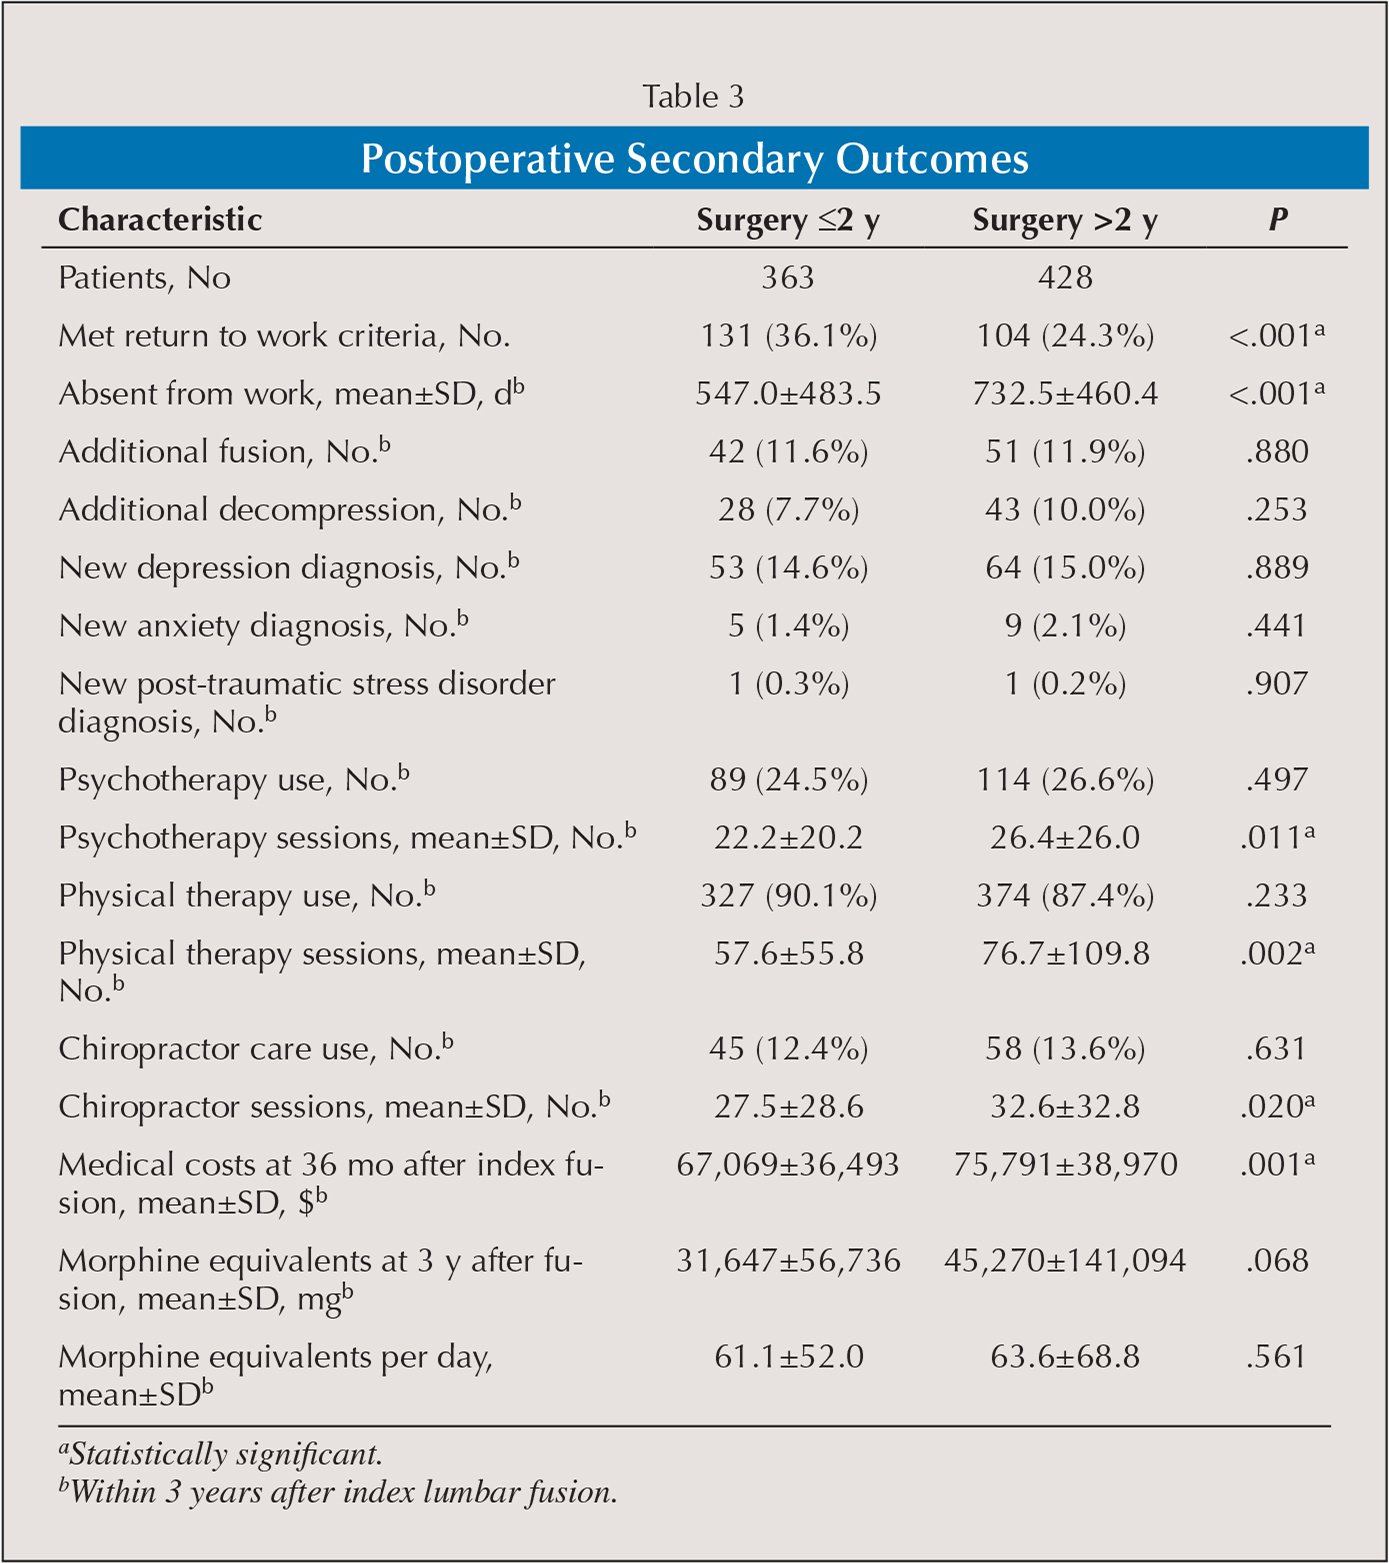 Postoperative Secondary Outcomes